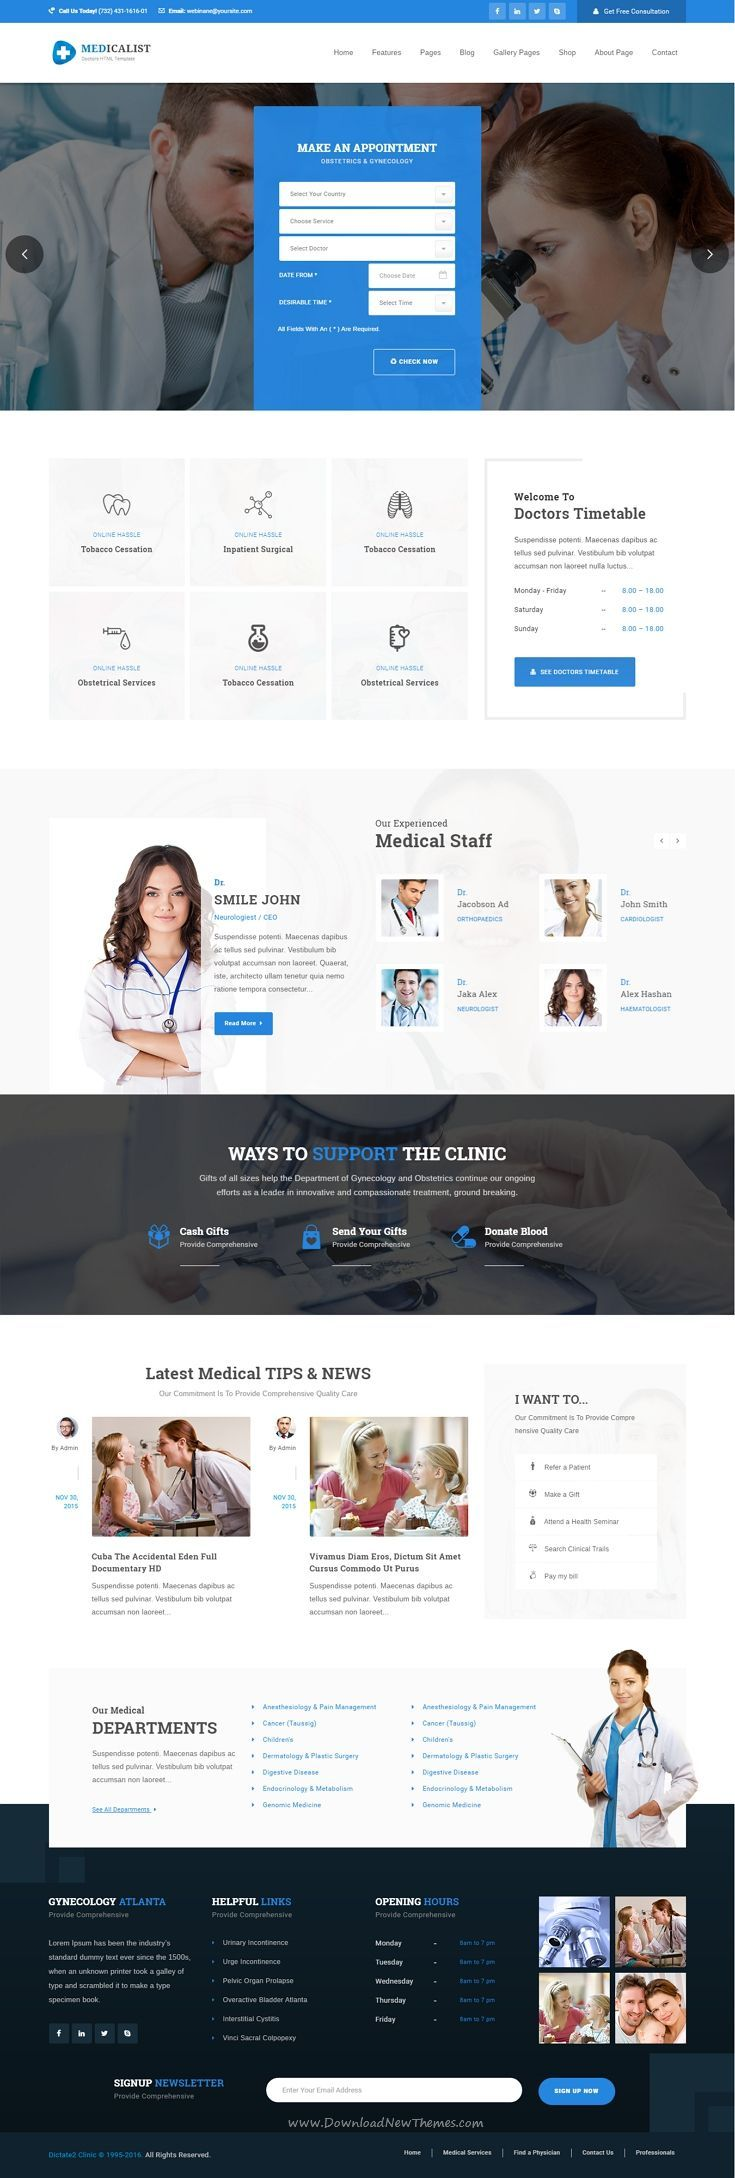 Medicalist - A Responsive HTML Bootstrap Template for Medical ...